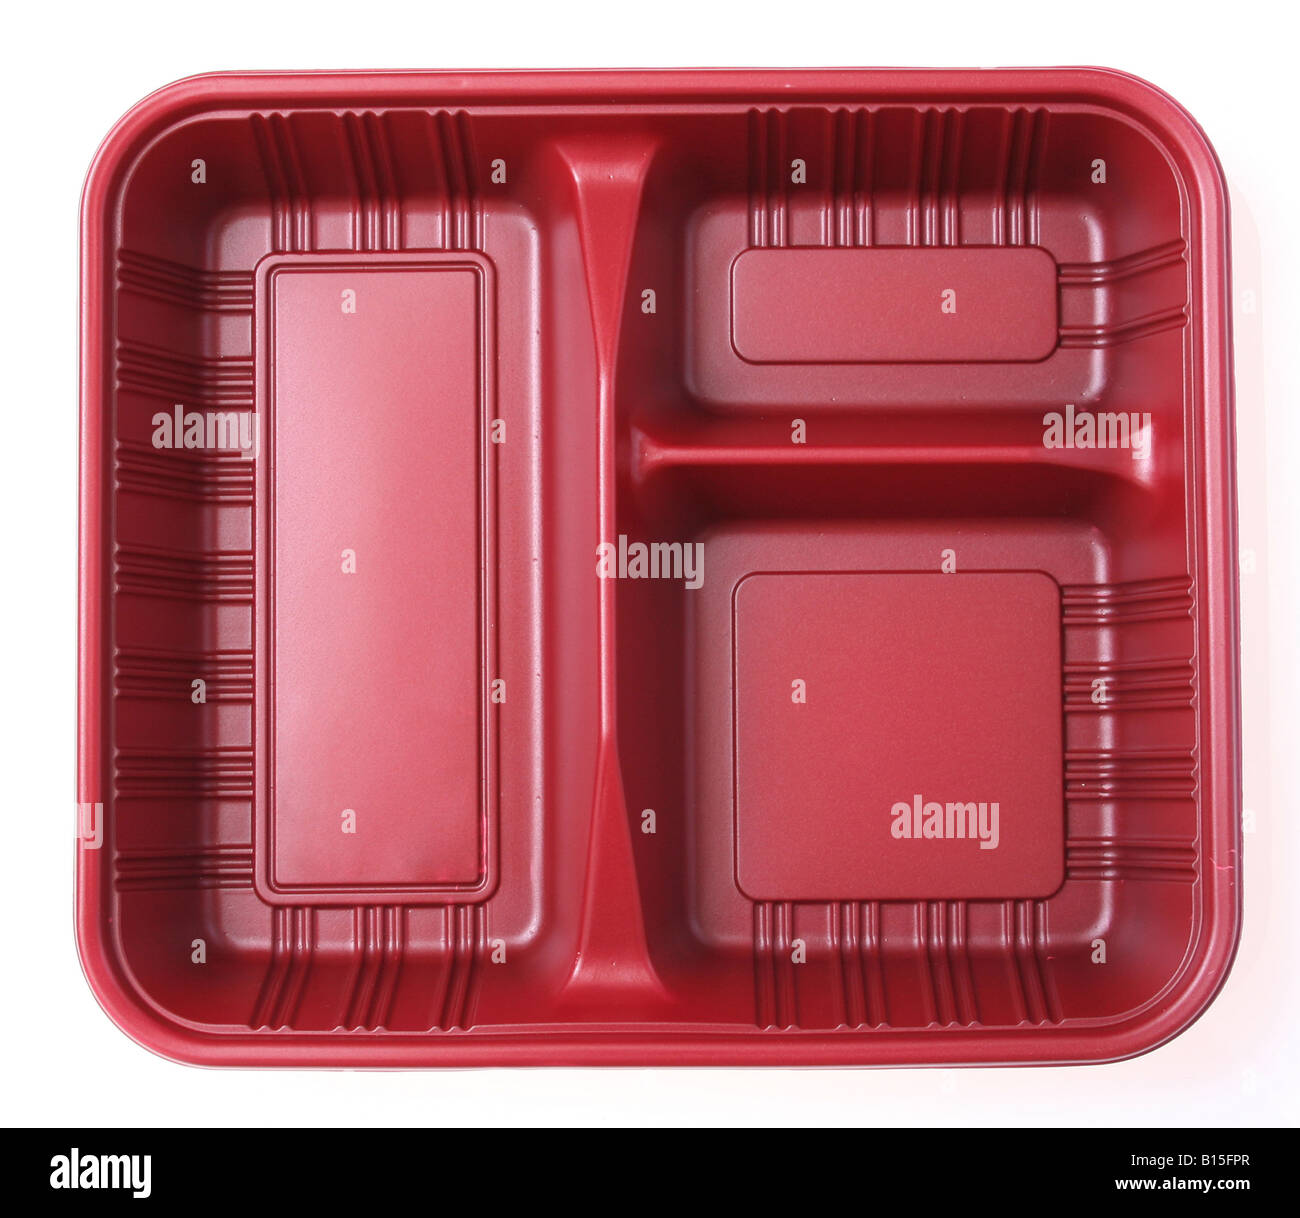 red plastic plate - Stock Image & Red Plastic Plate Stock Photos u0026 Red Plastic Plate Stock Images - Alamy